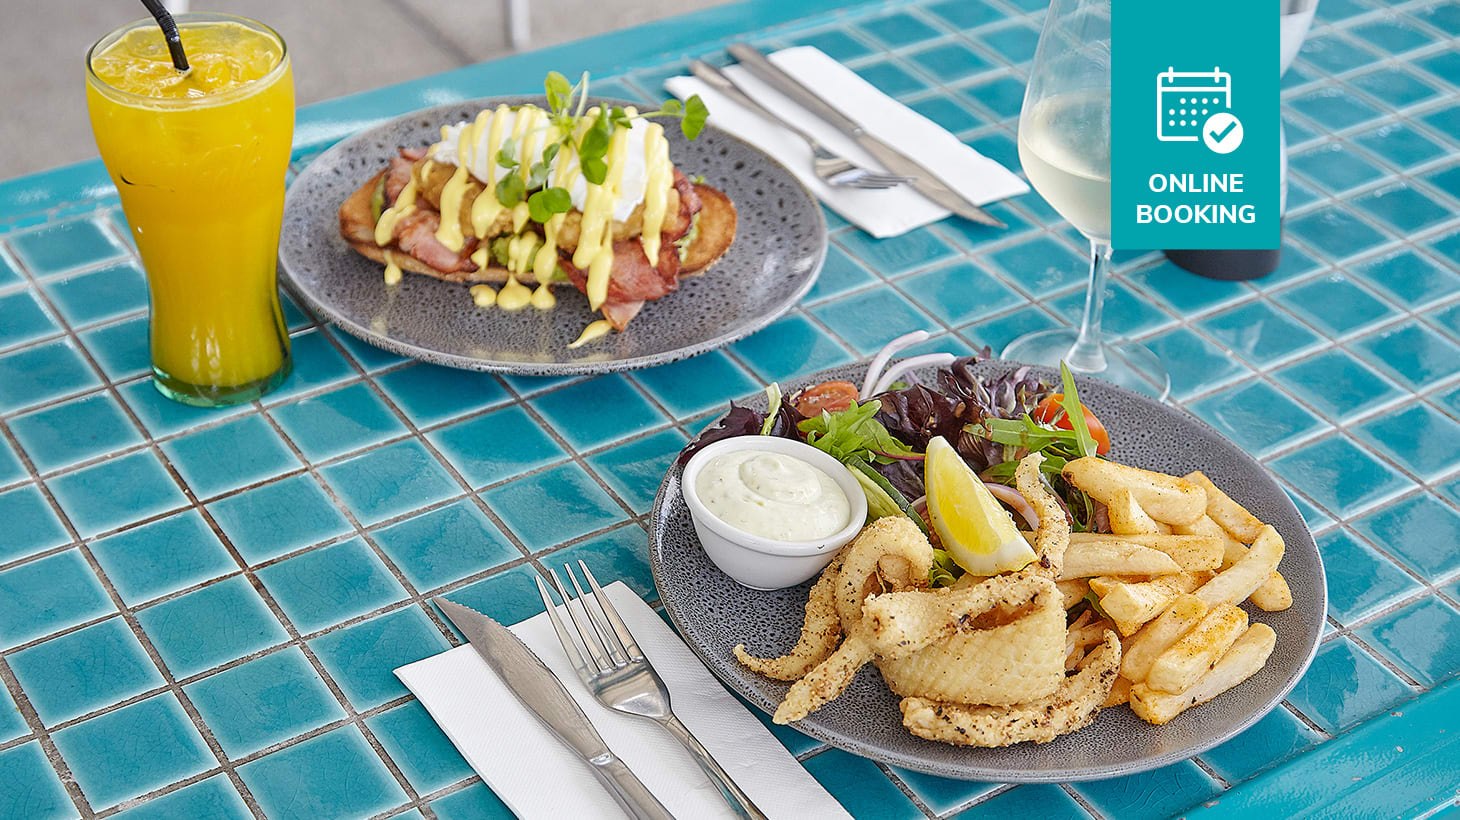 Cafe Dining and Drinks at Popular Shopping Centre Scuzi Caffe Chermside